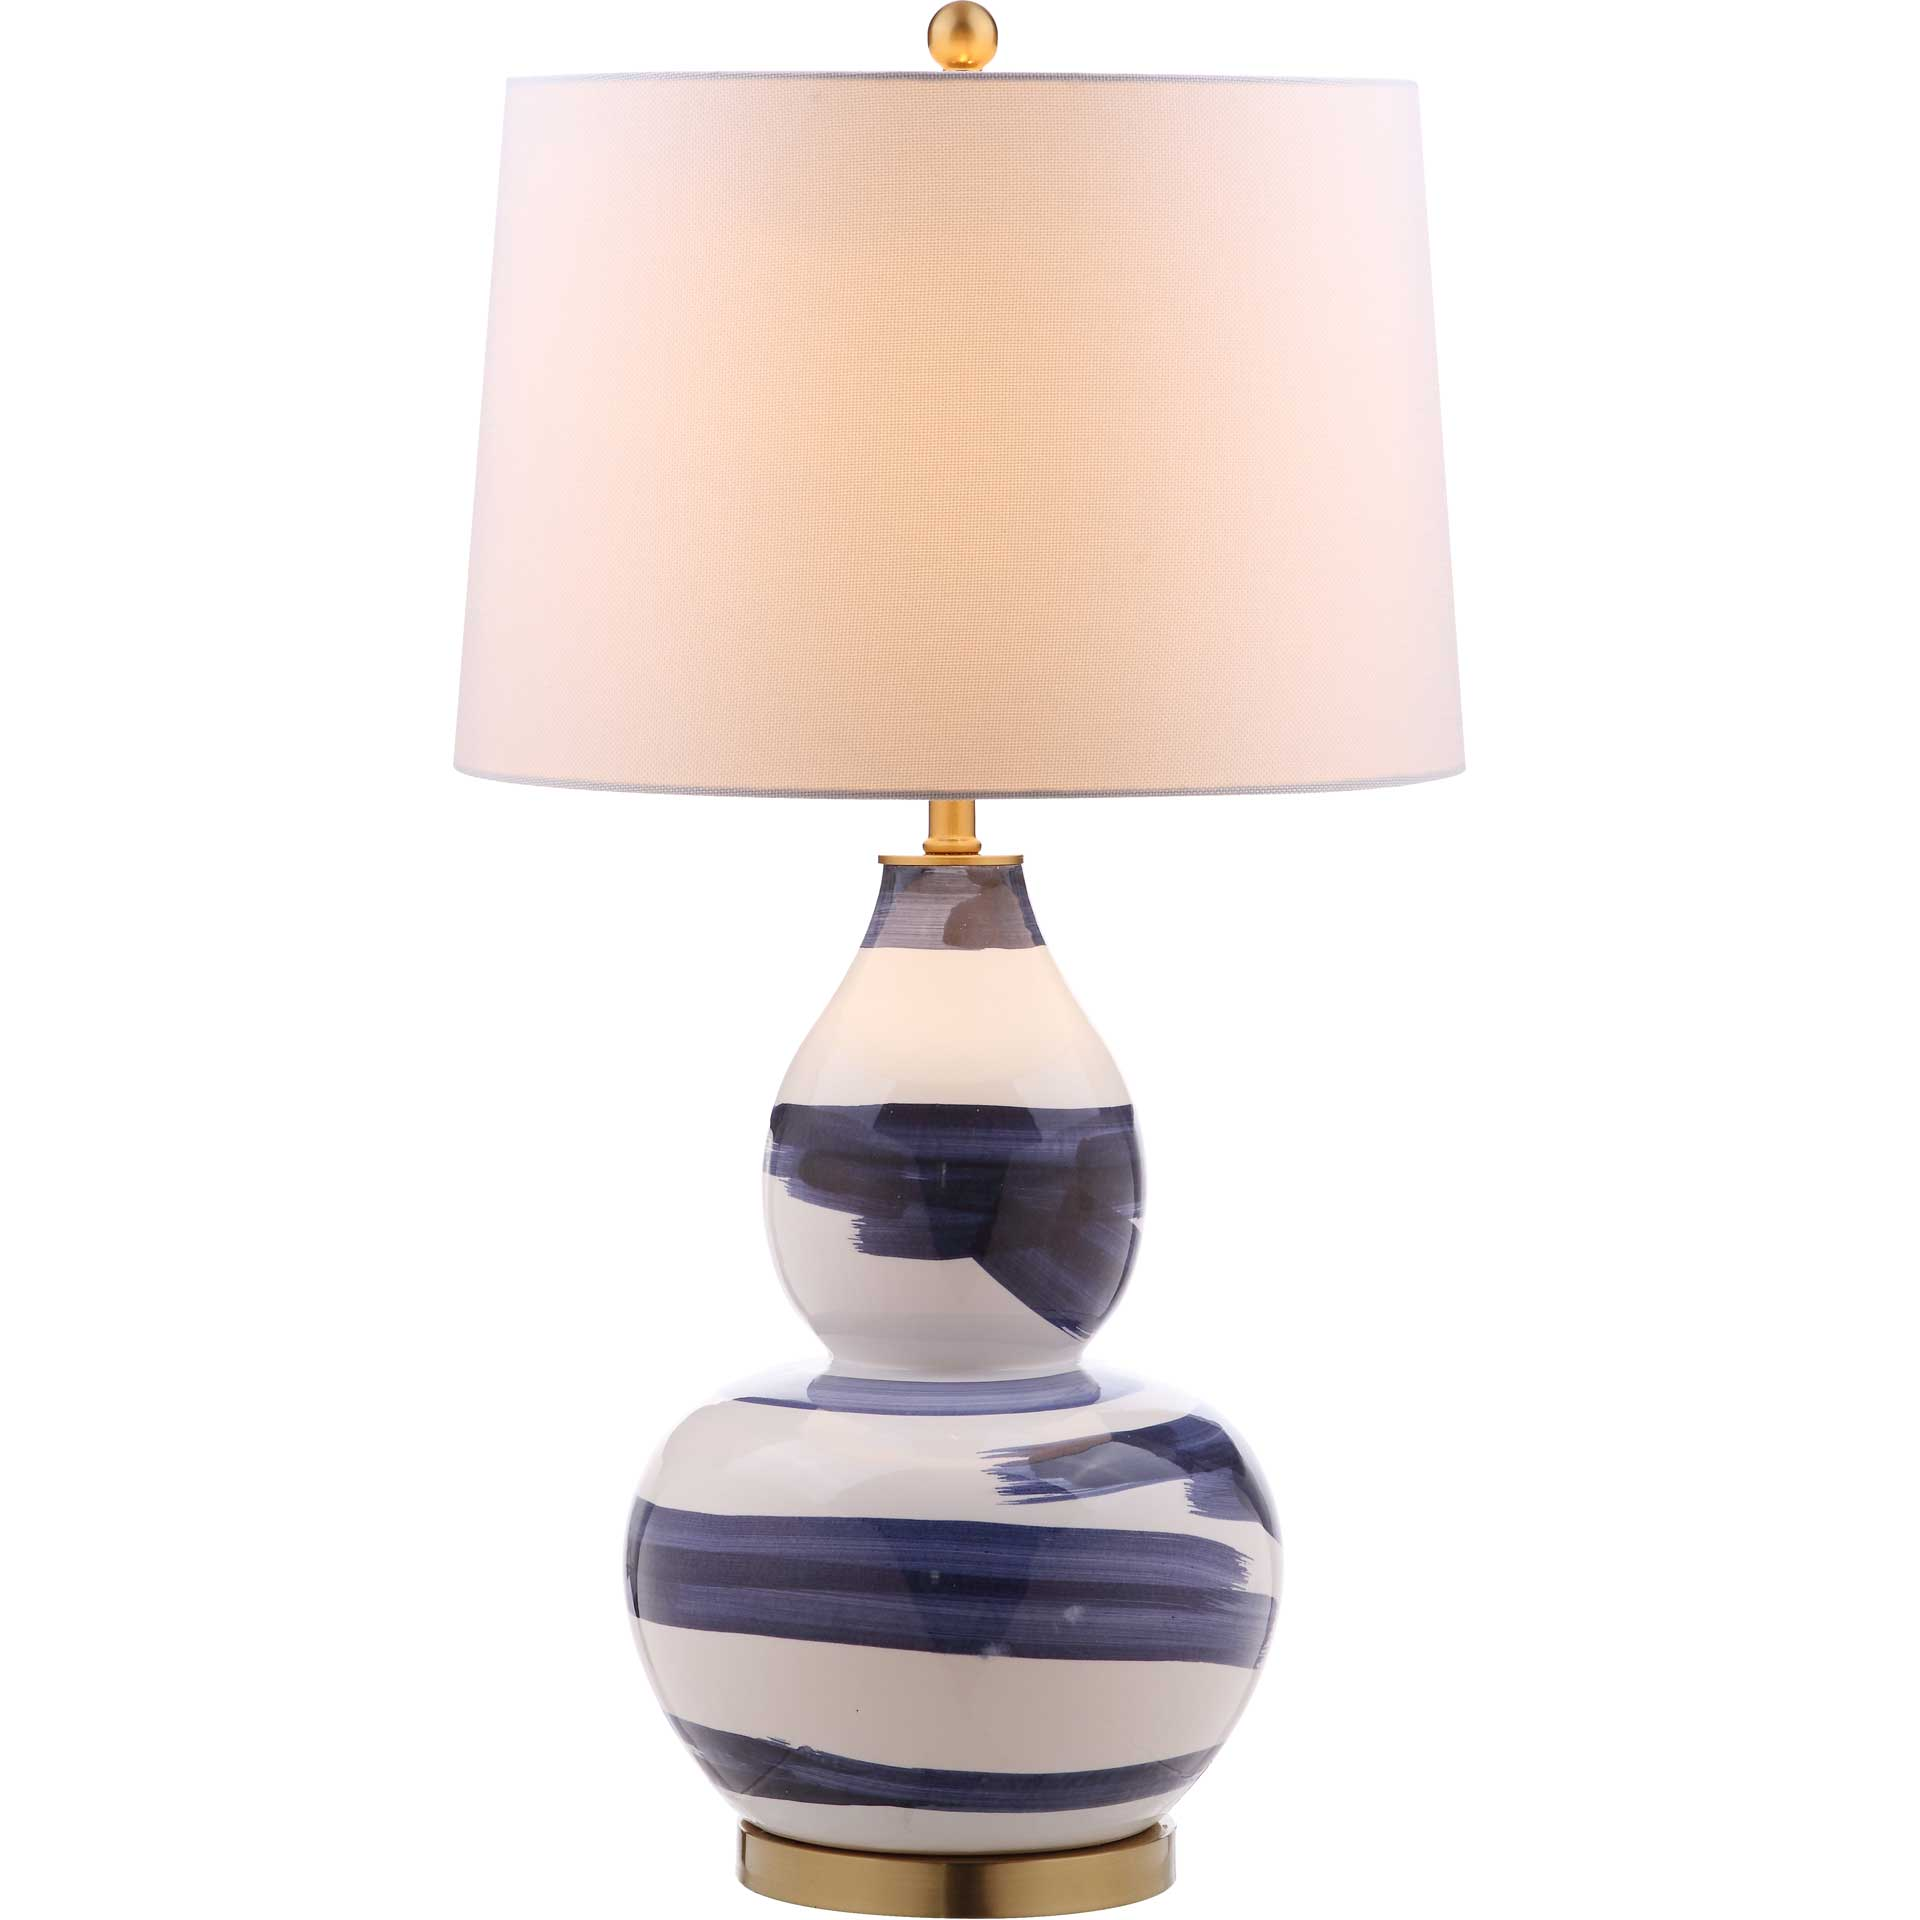 Ailey Table Lamp Blue/White